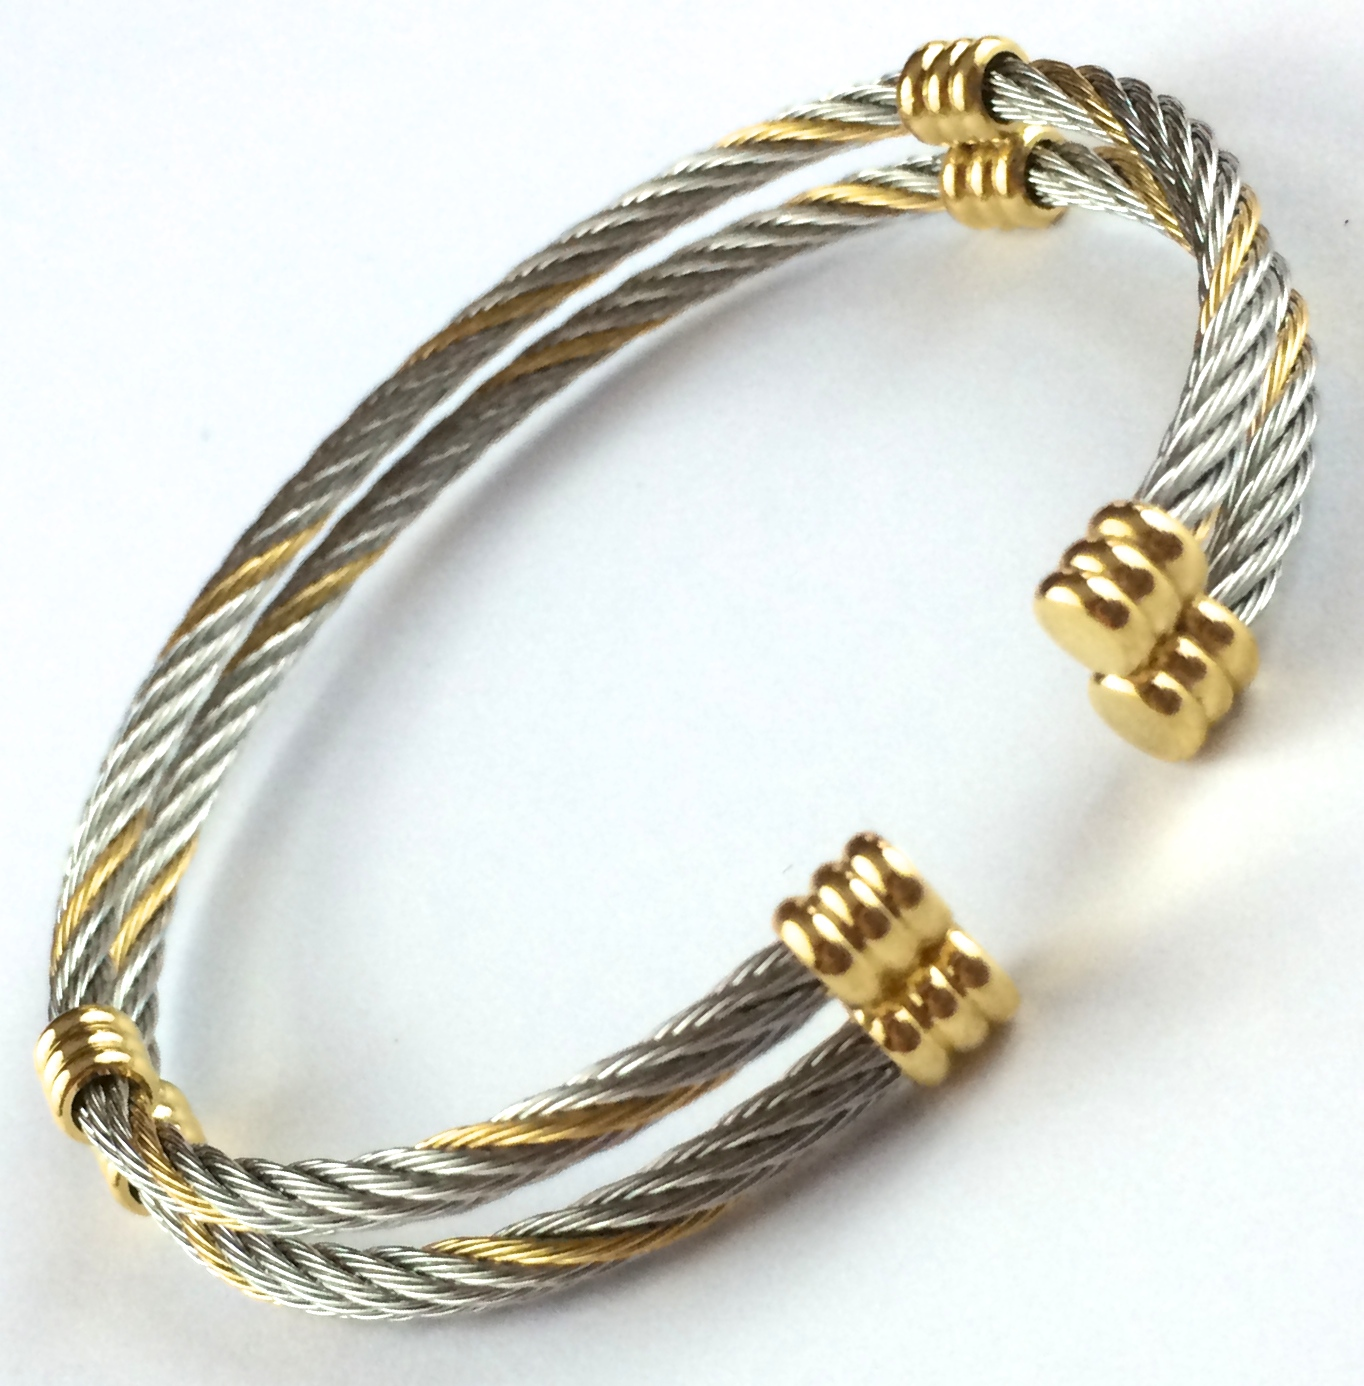 HowTheBandWorks.com – Stainless 2 Wire Cable Bangle w/Gold Accents